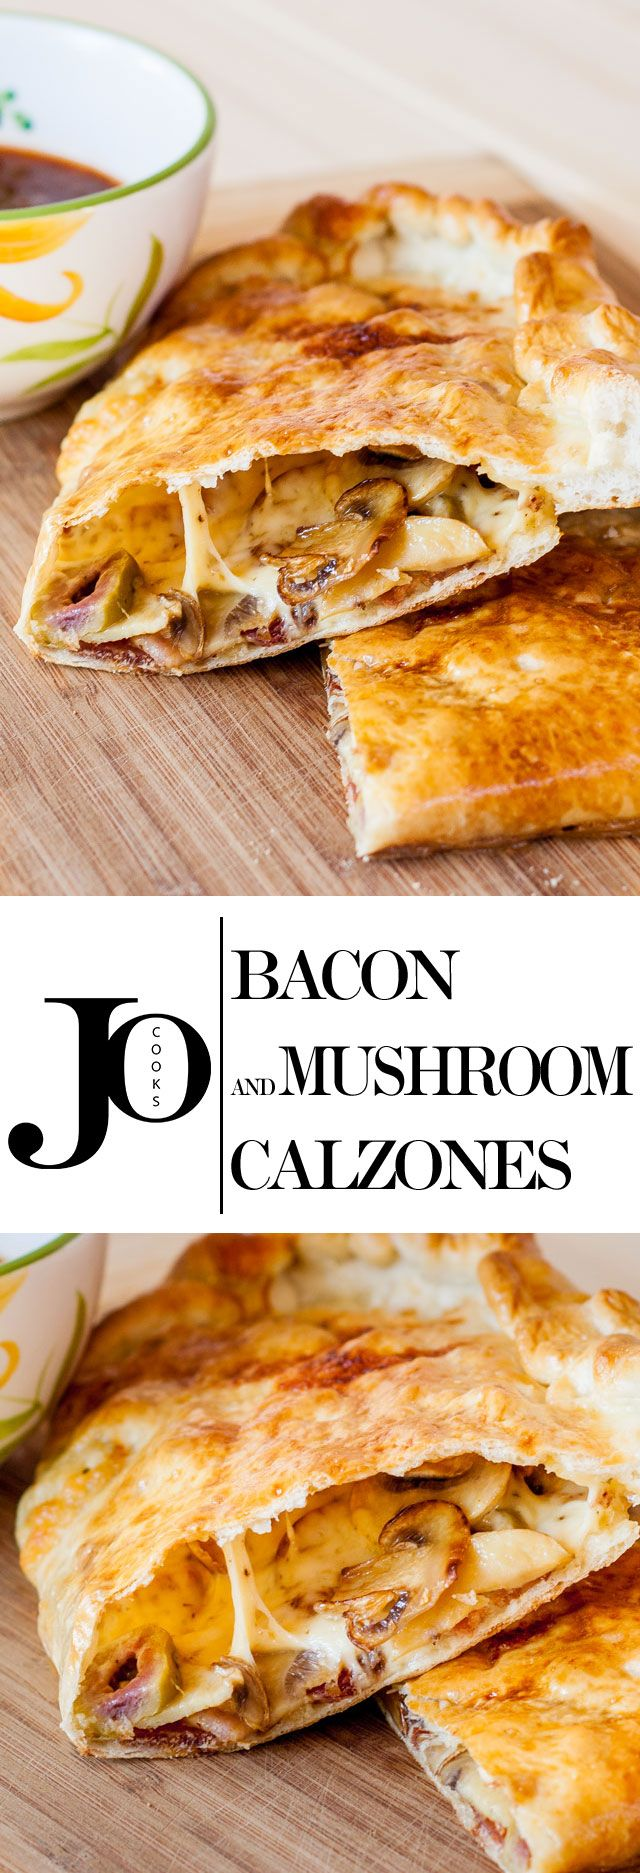 Bacon and Mushroom Calzones come packed with cheese, mushrooms, bacon and a secret ingredient that make these calzones phenomenal.